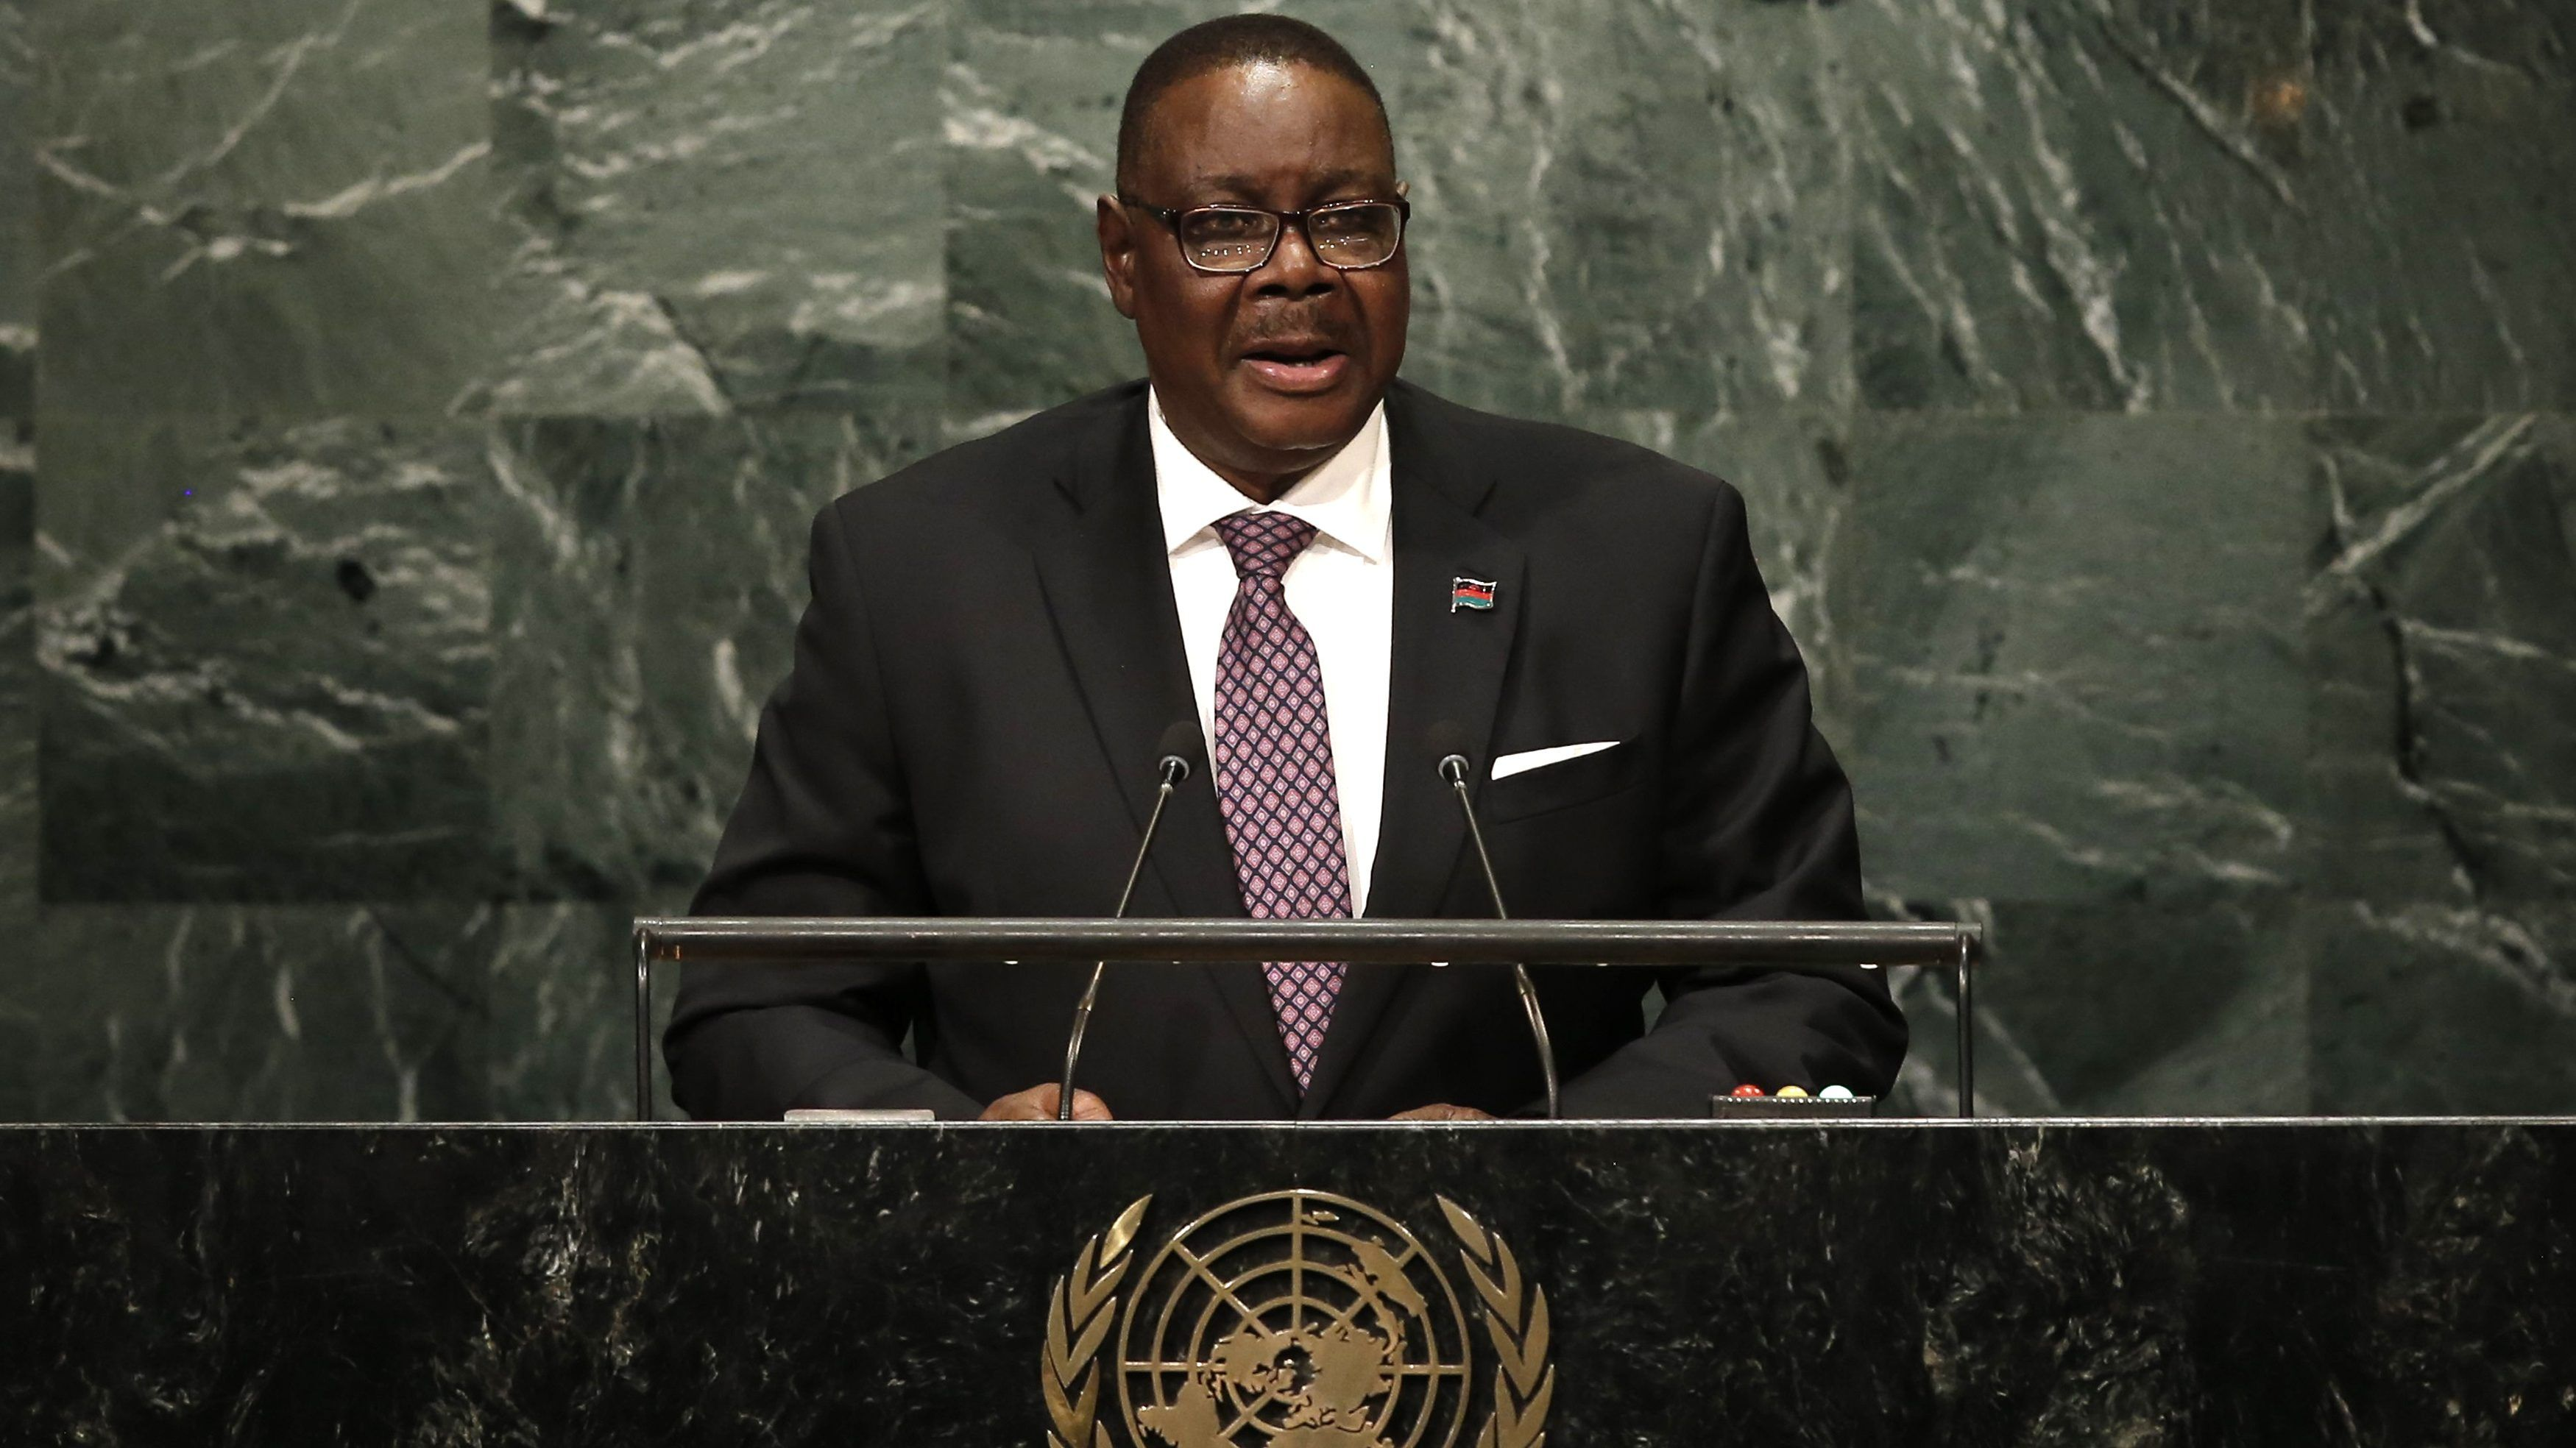 Malawi's president has taken a pay cut for a coronavirus fight even as an election do-over looms